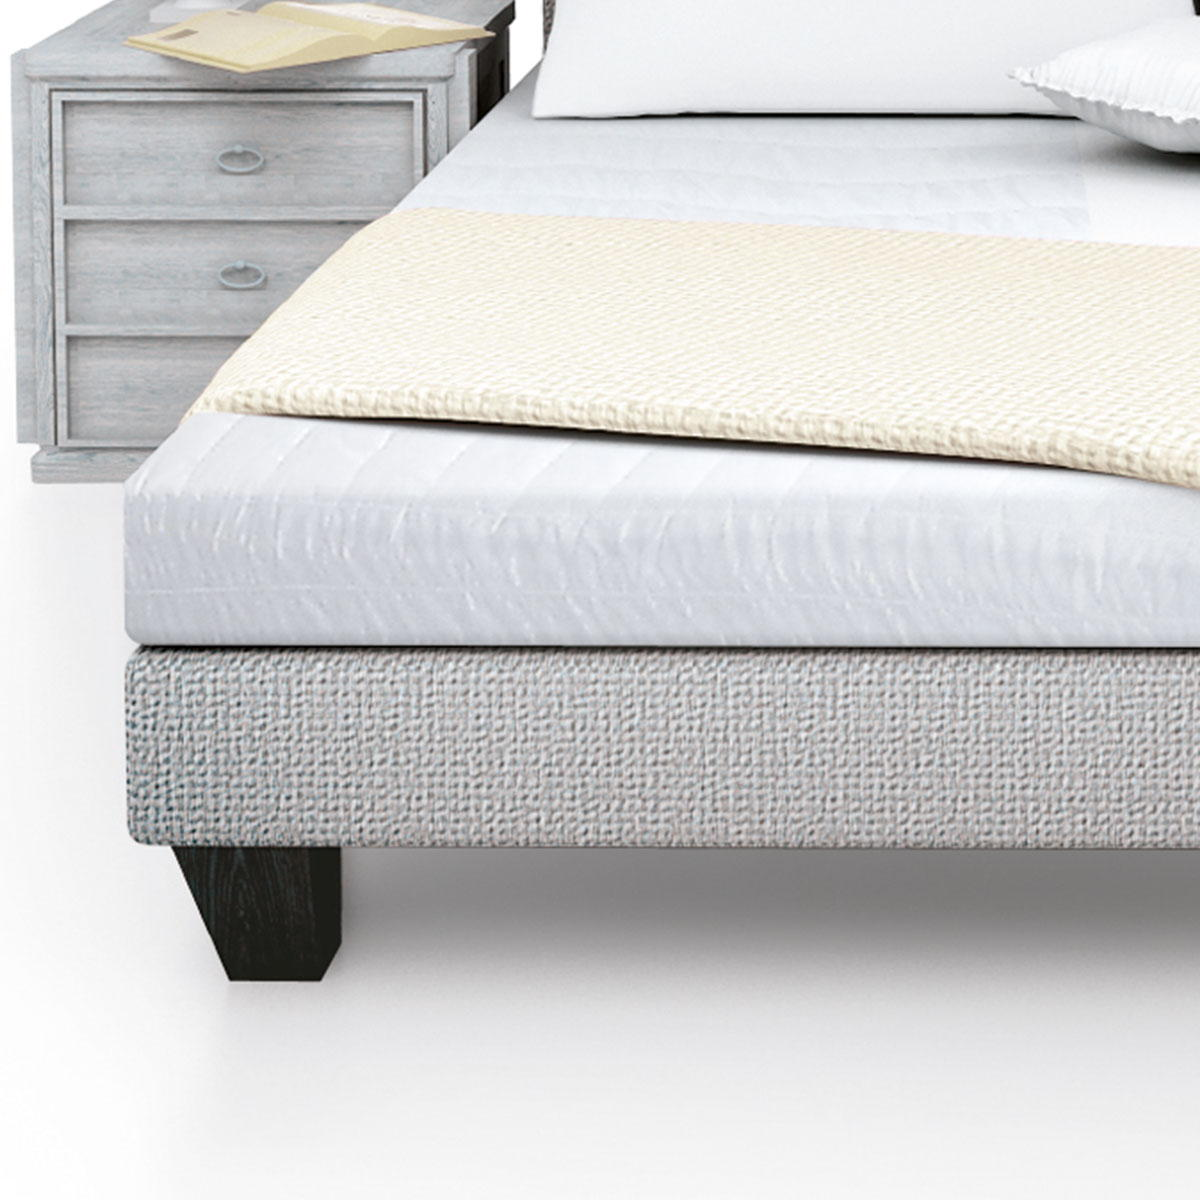 prot ge matelas duvetine en molleton 100 coton standard textile. Black Bedroom Furniture Sets. Home Design Ideas